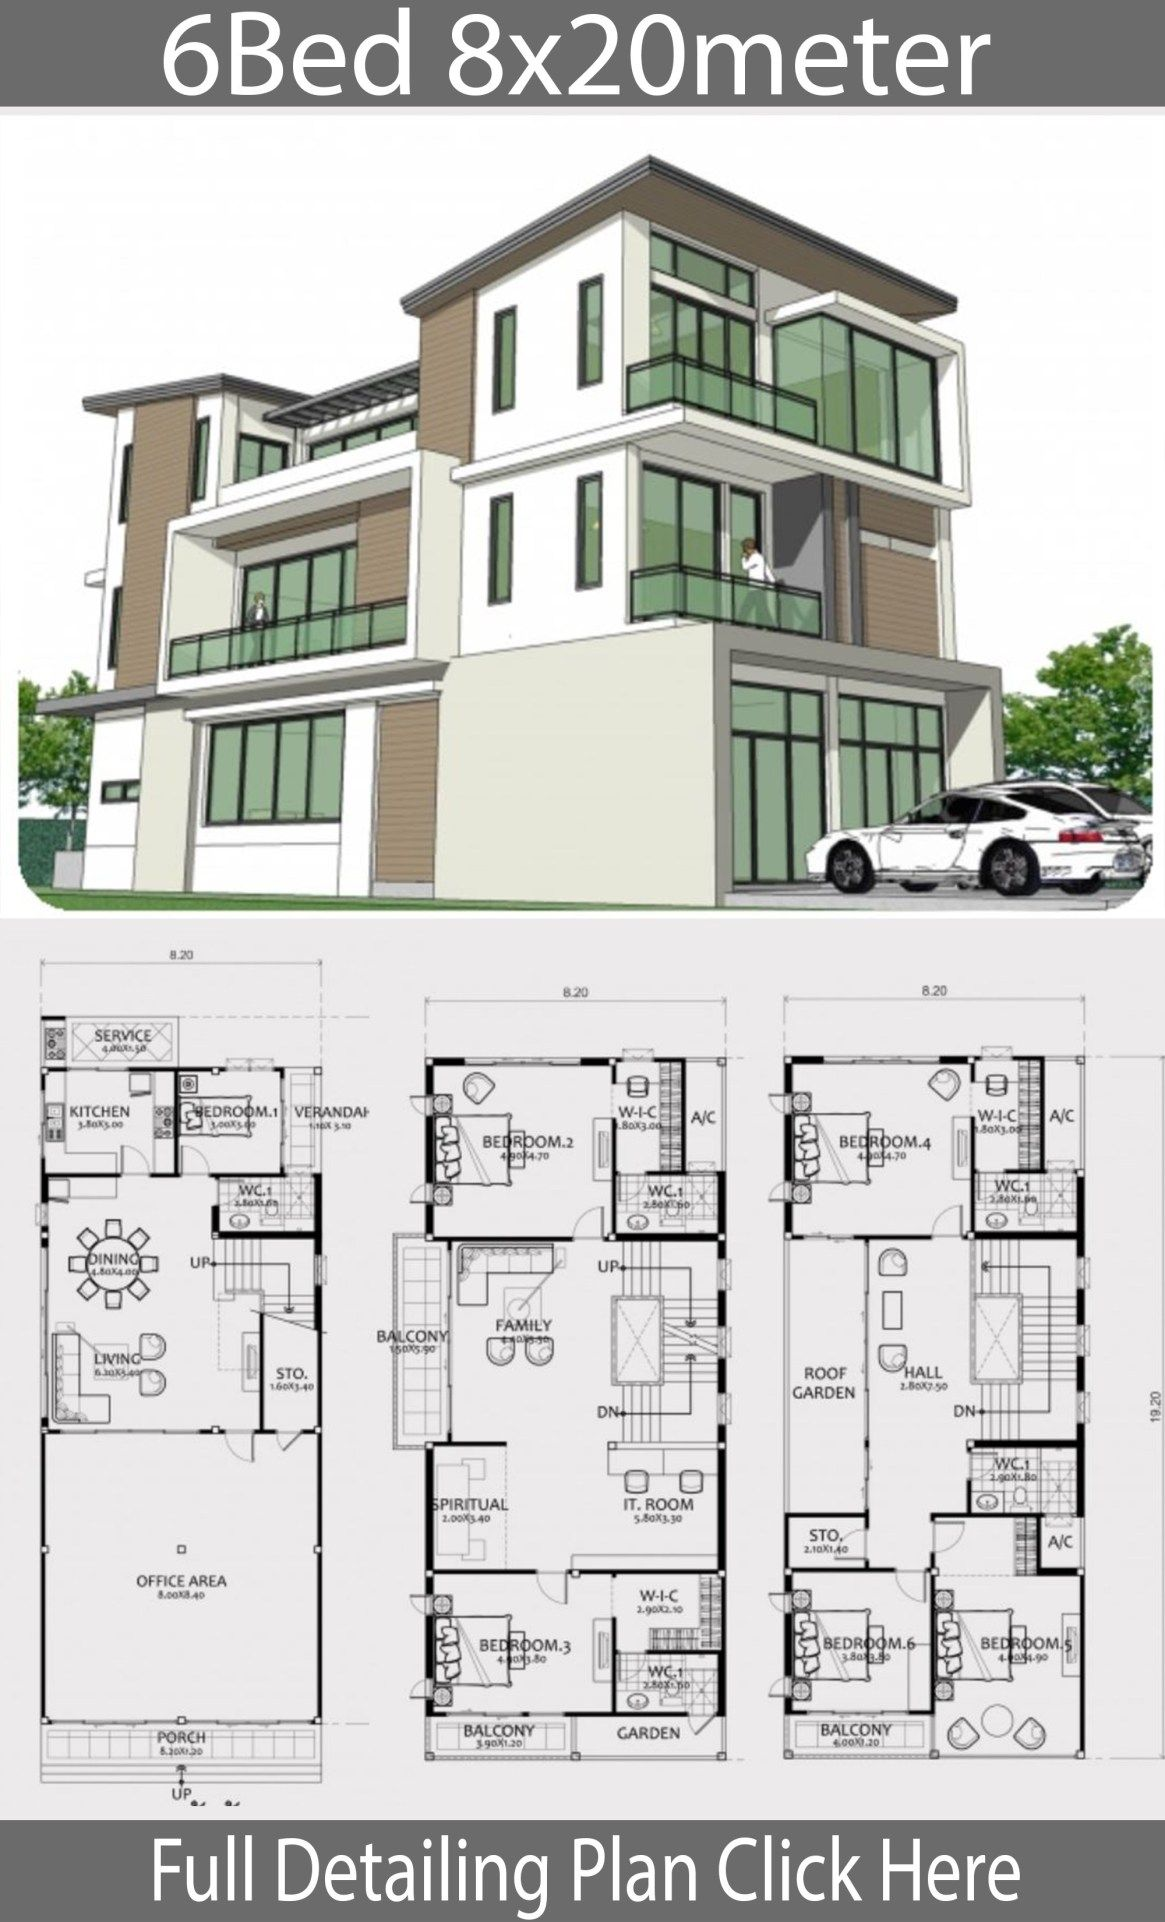 Home Design Plan 8x20m With 6 Bedrooms Home Design With Plansearch Two Story House Design Modern House Floor Plans Modern House Design